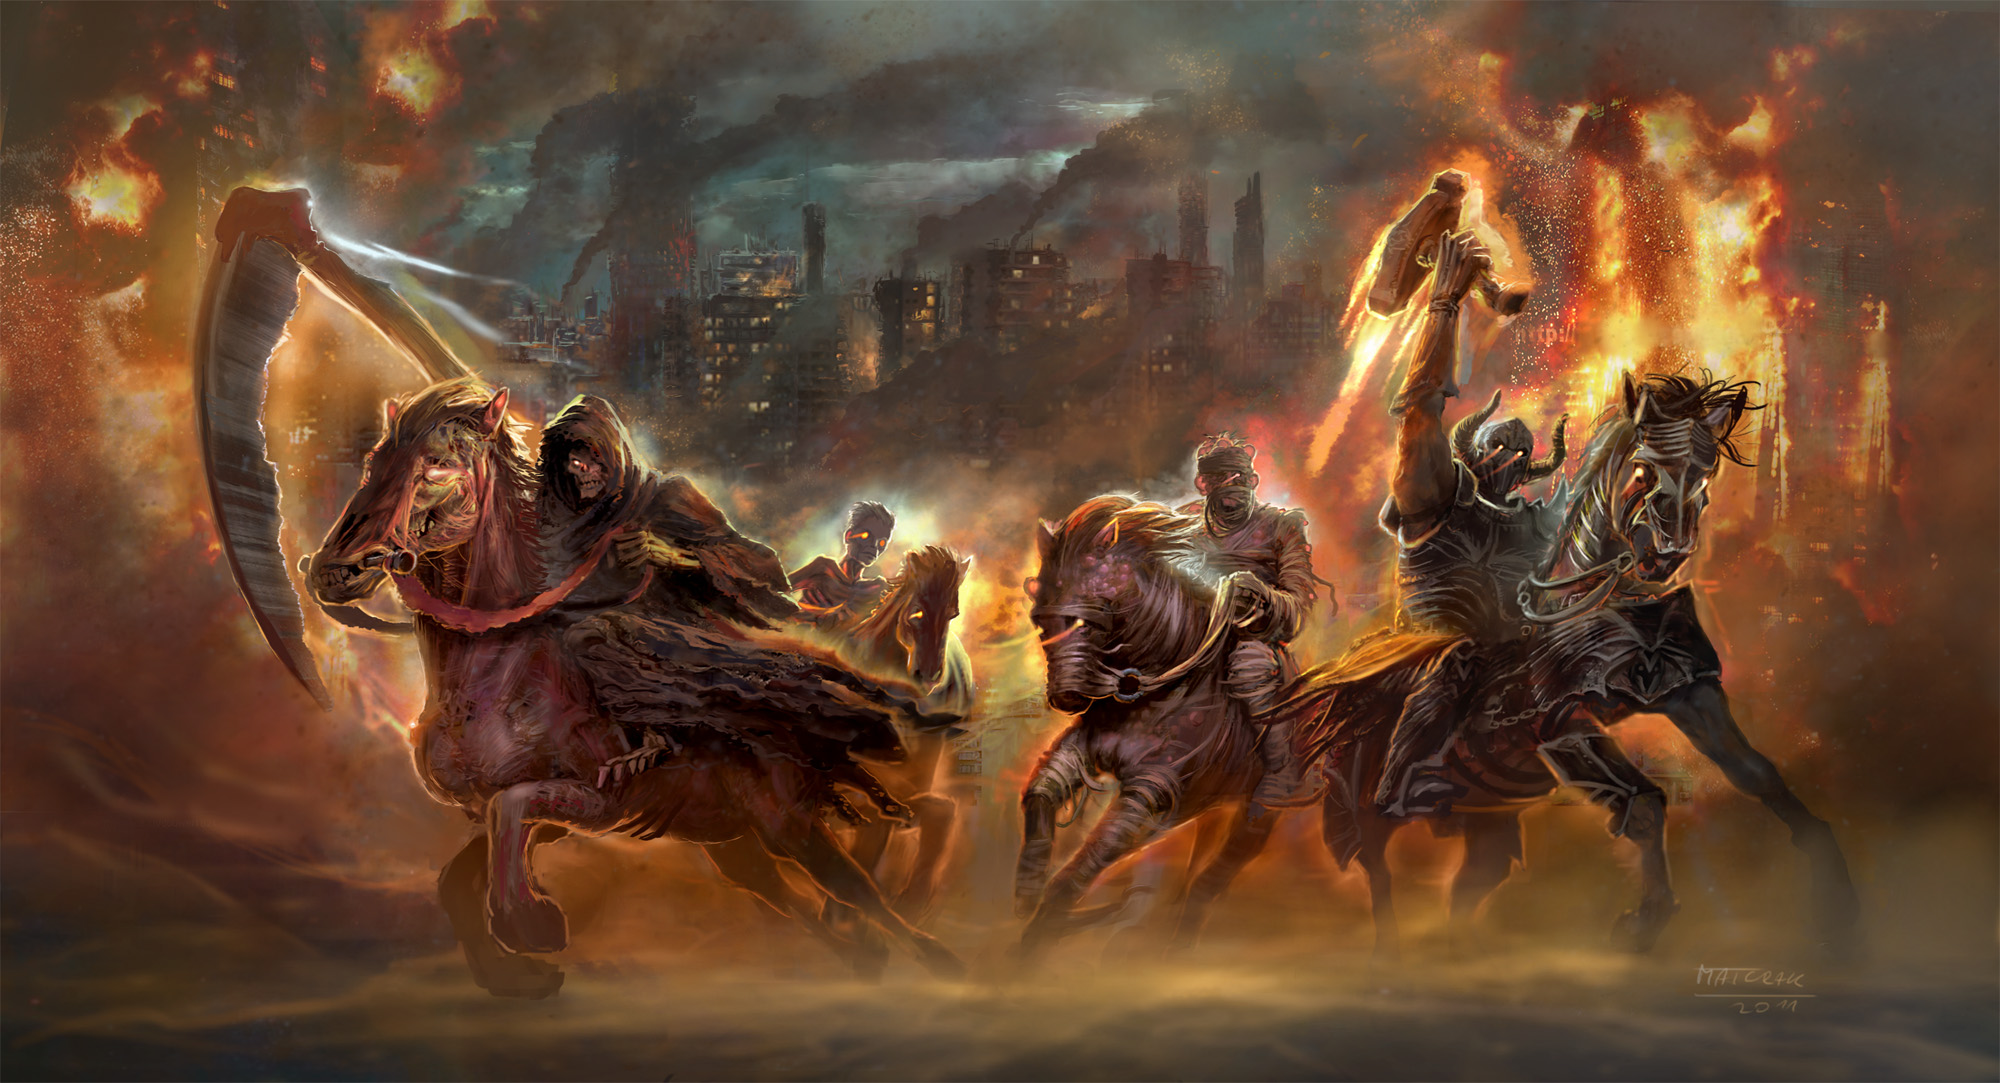 The Four Horsemen Of The Apocalypse Hd Wallpaper Background Image